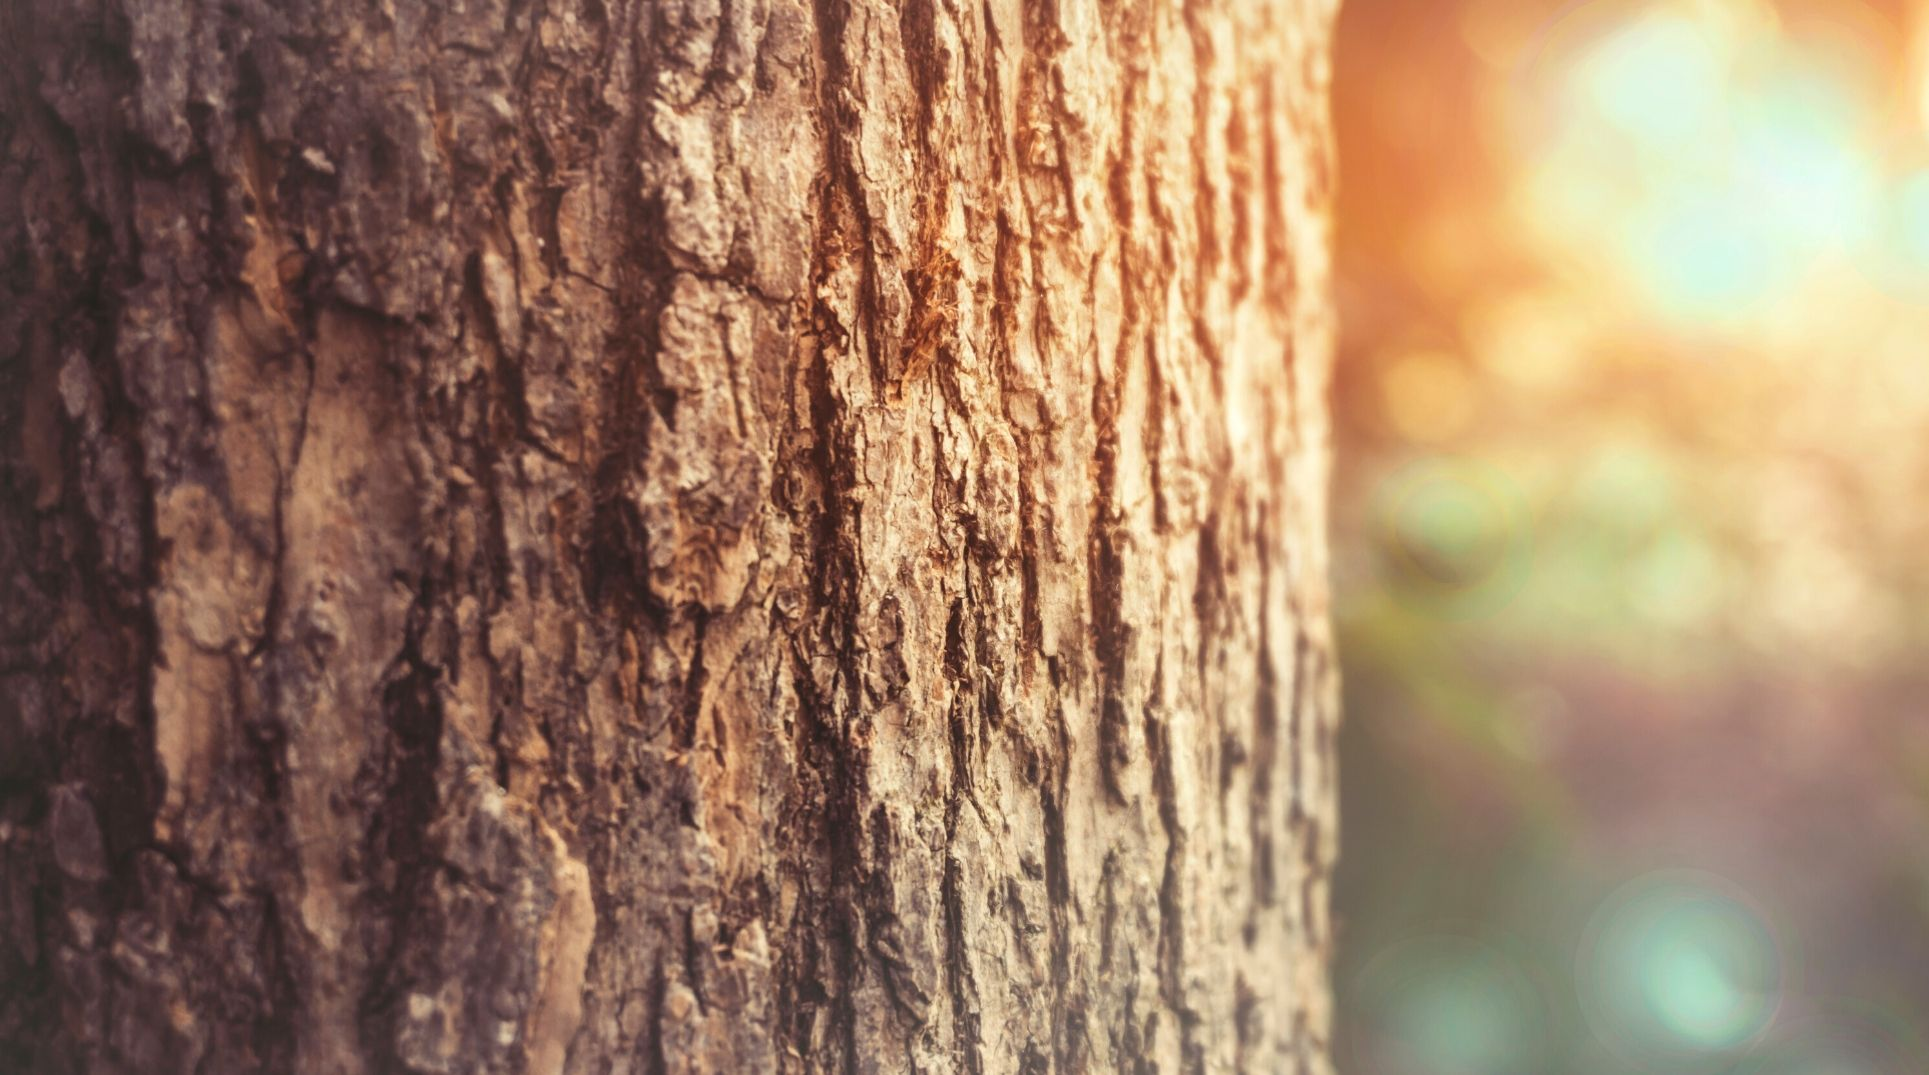 up close photo of tree in forest